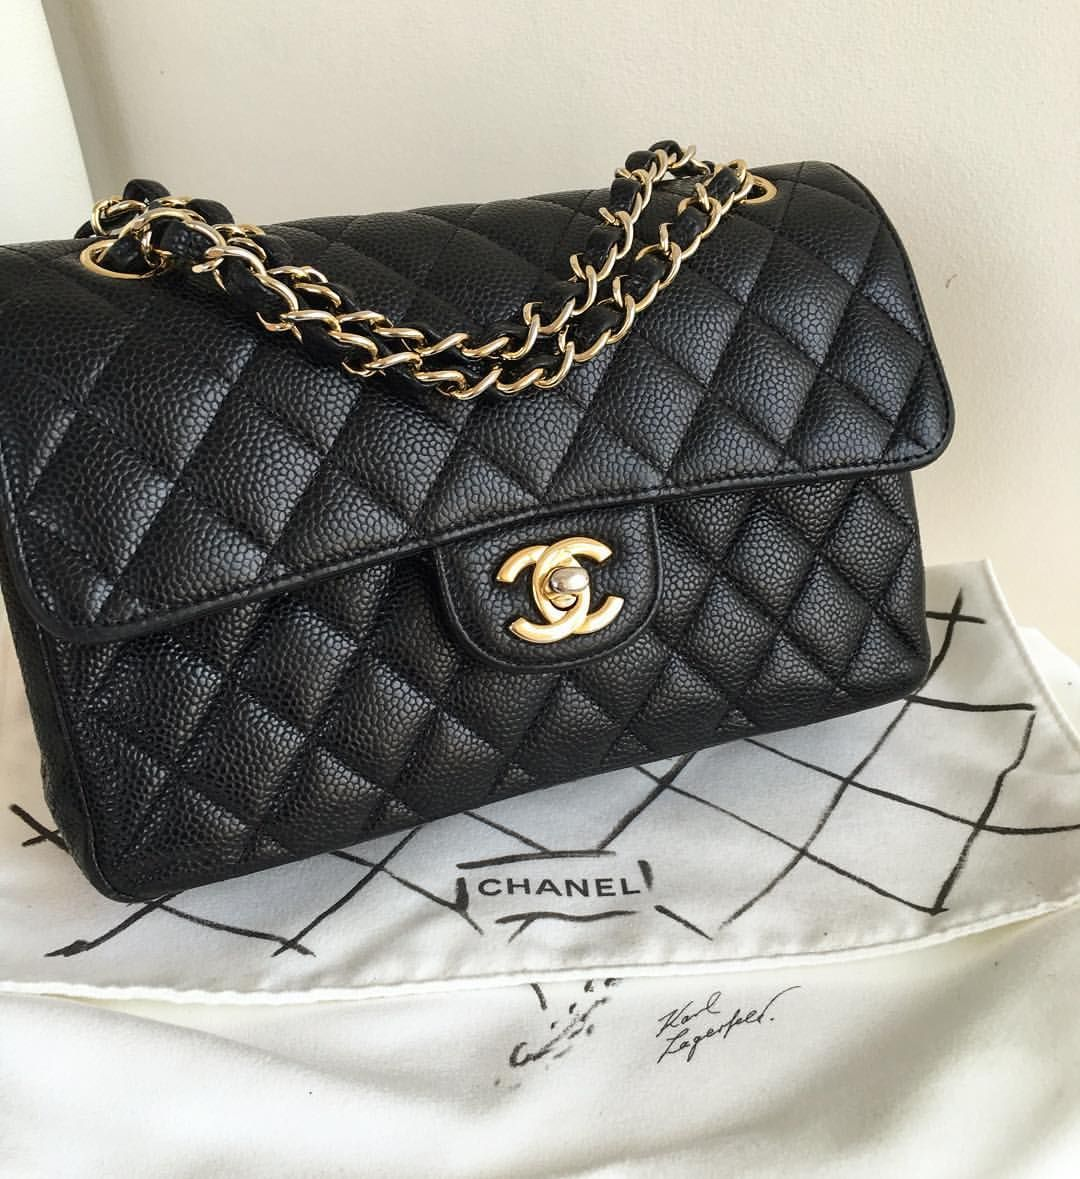 ad610cd79ccede Chanel #chanelclassicflap #2.55 #23cm Chanel Classic Flap, Luxury Handbags,  Classy,